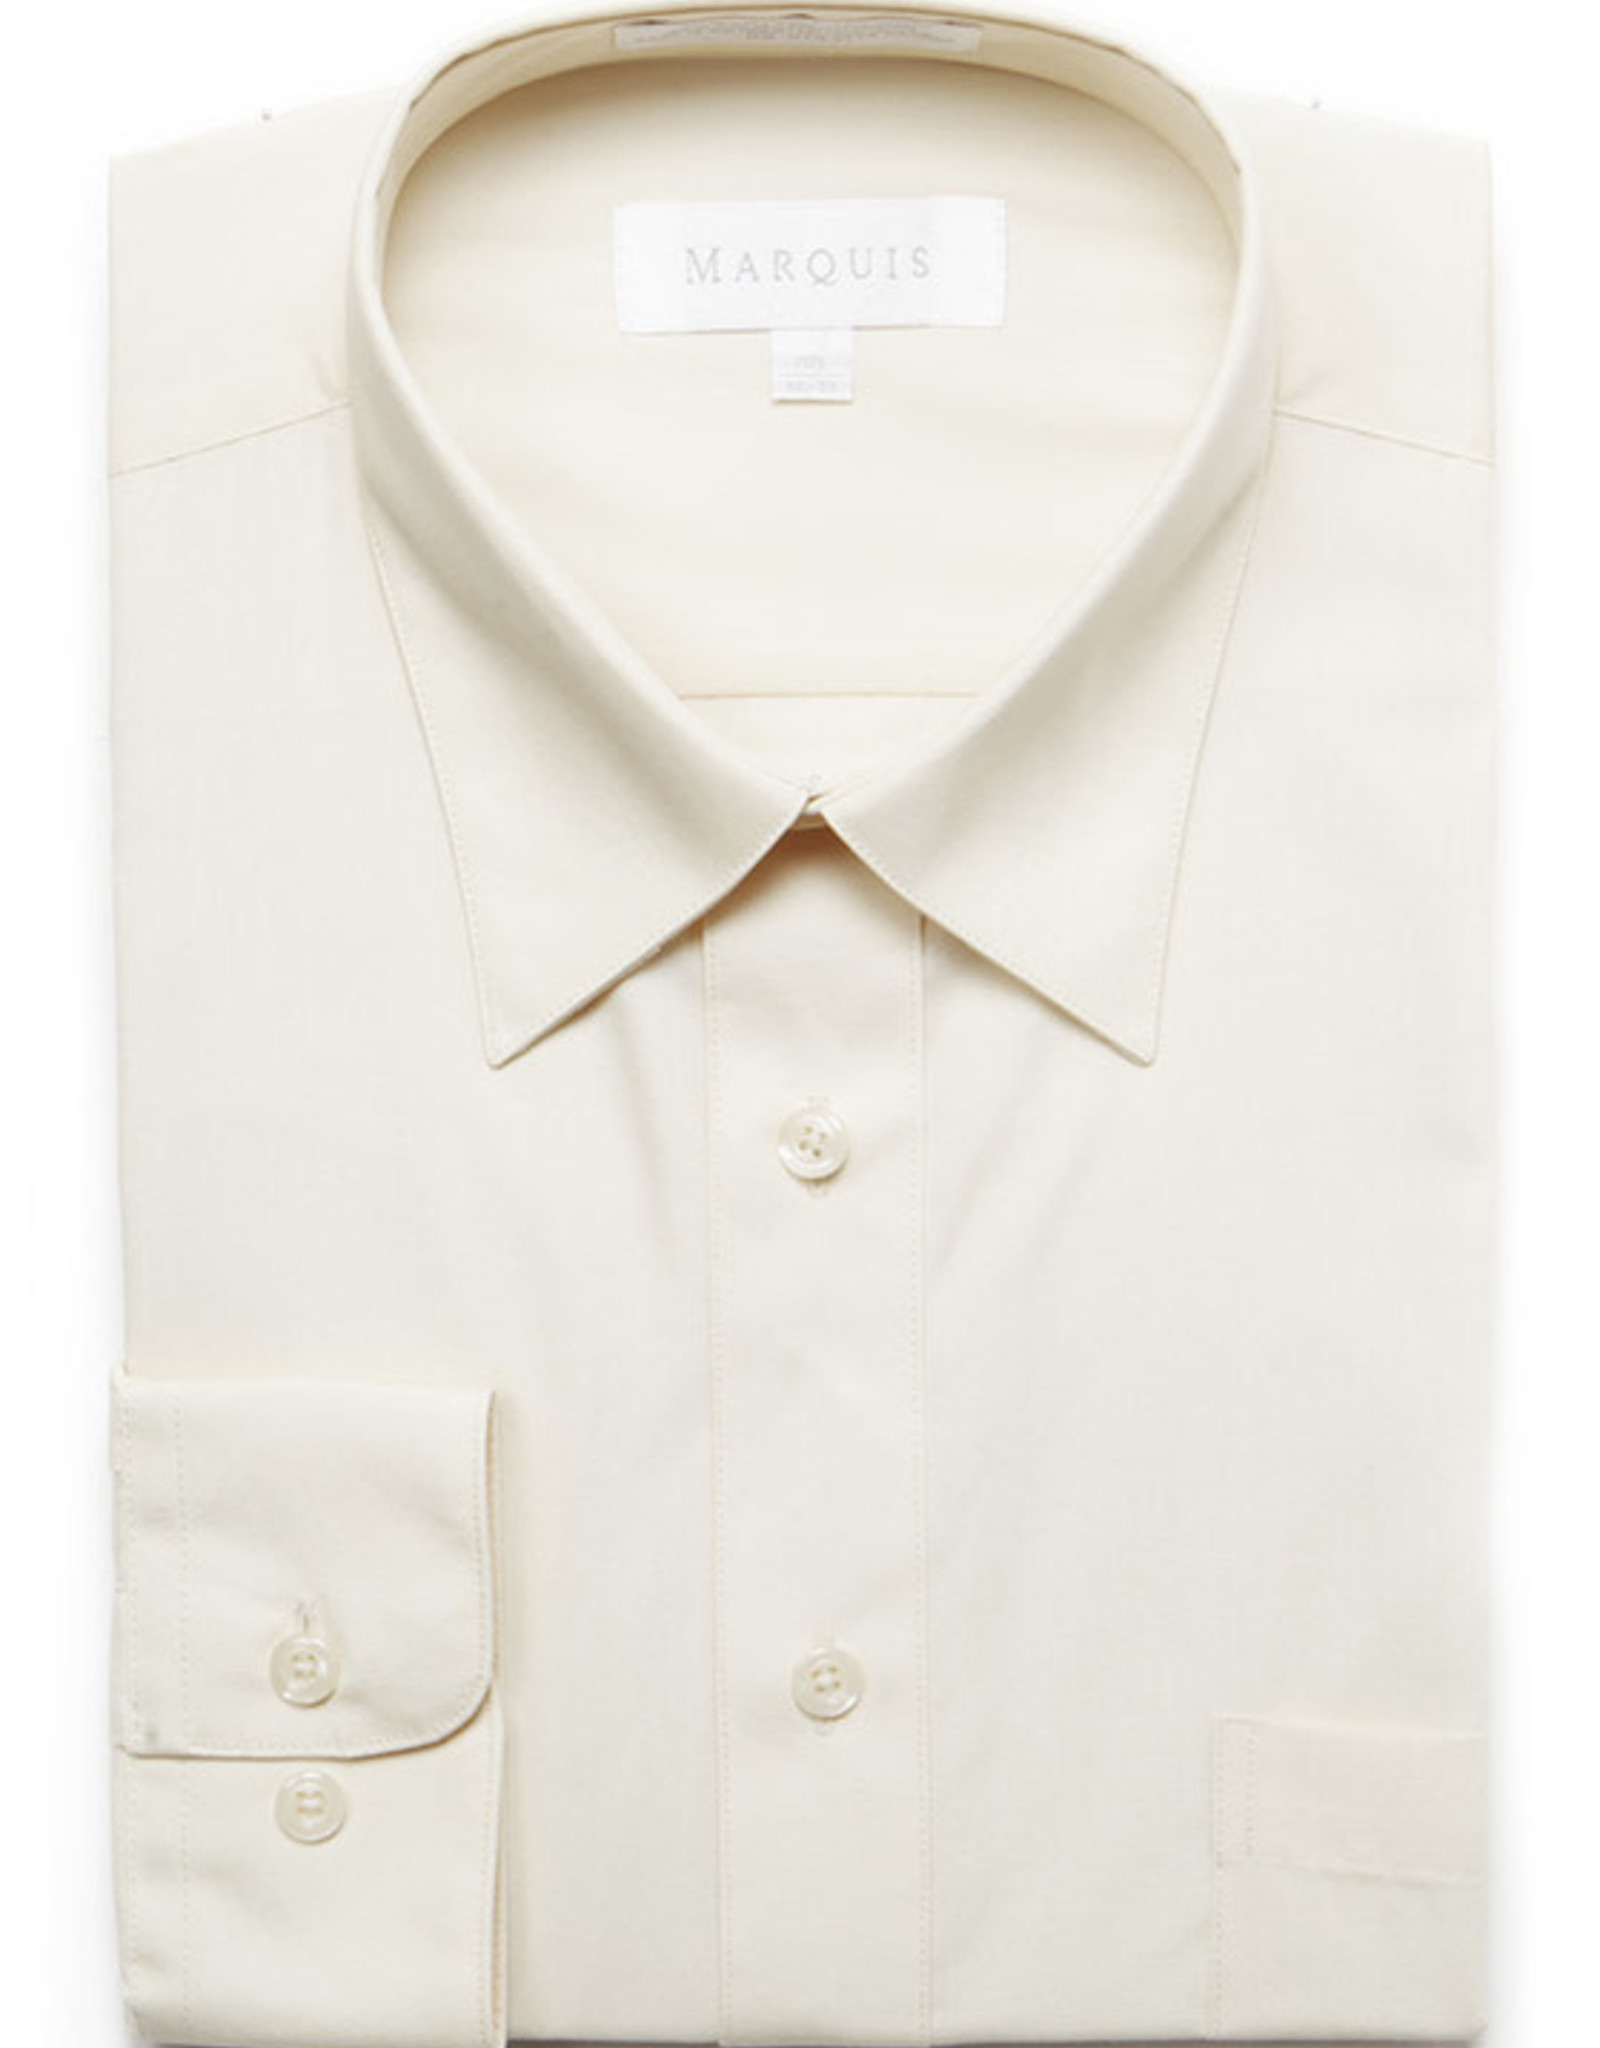 Marquis Dress Shirt MarQuis Regular Fit Ecru